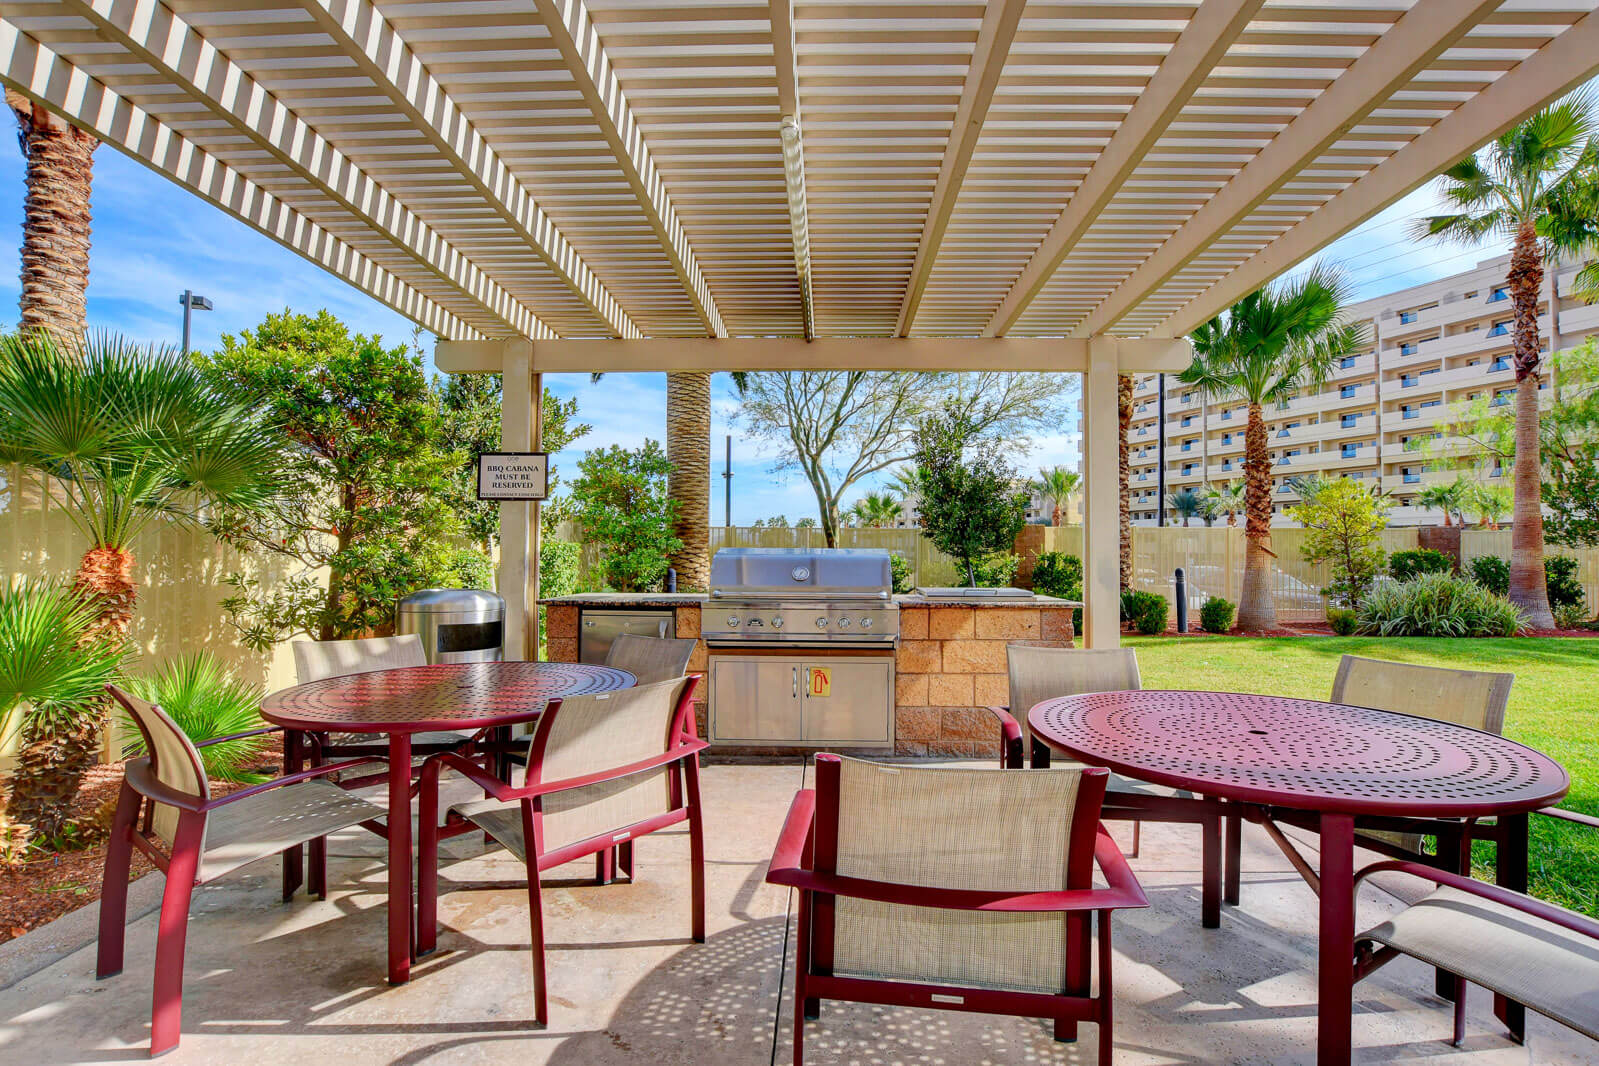 shaded outdoor patio with BBQ